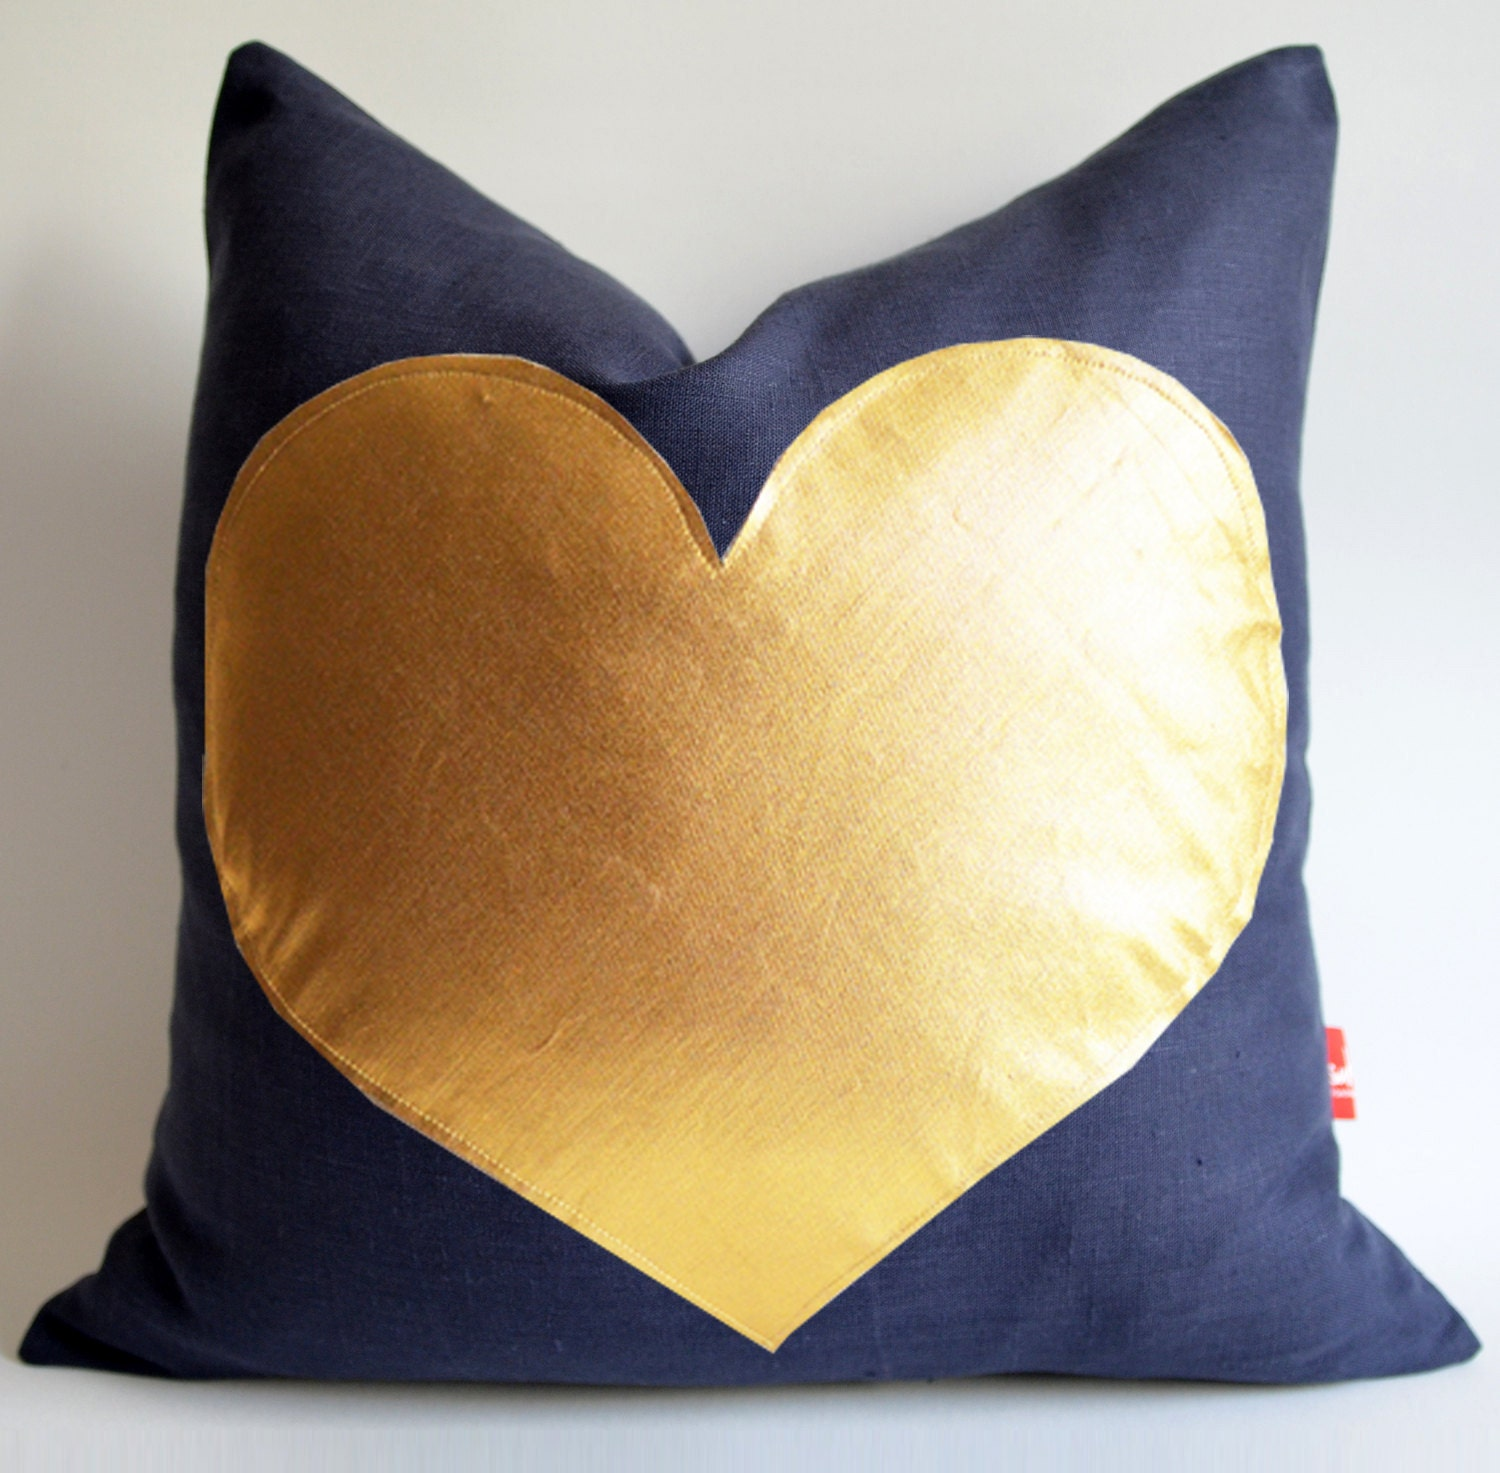 Sukan navy blue and gold pillow red and gold pillow by sukan for Blue and gold pillows